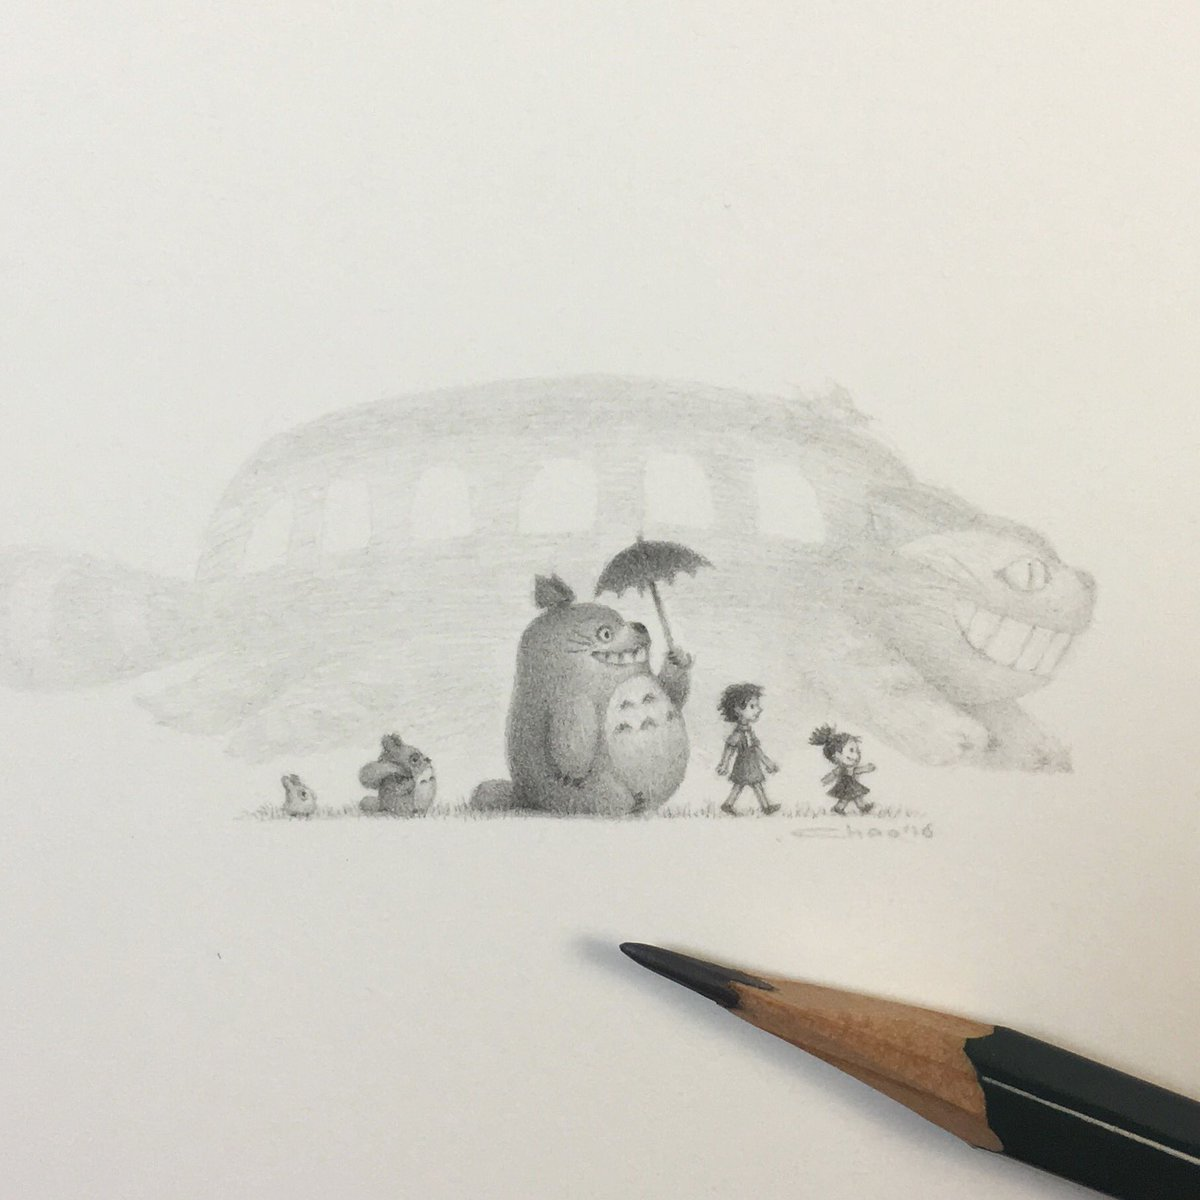 My tiny drawing for the Miyazaki Show at @Spoke_Art SF. Pencil for scale ref :-) #totoro #miyazaki #tribute https://t.co/ZWlsRnN9tU